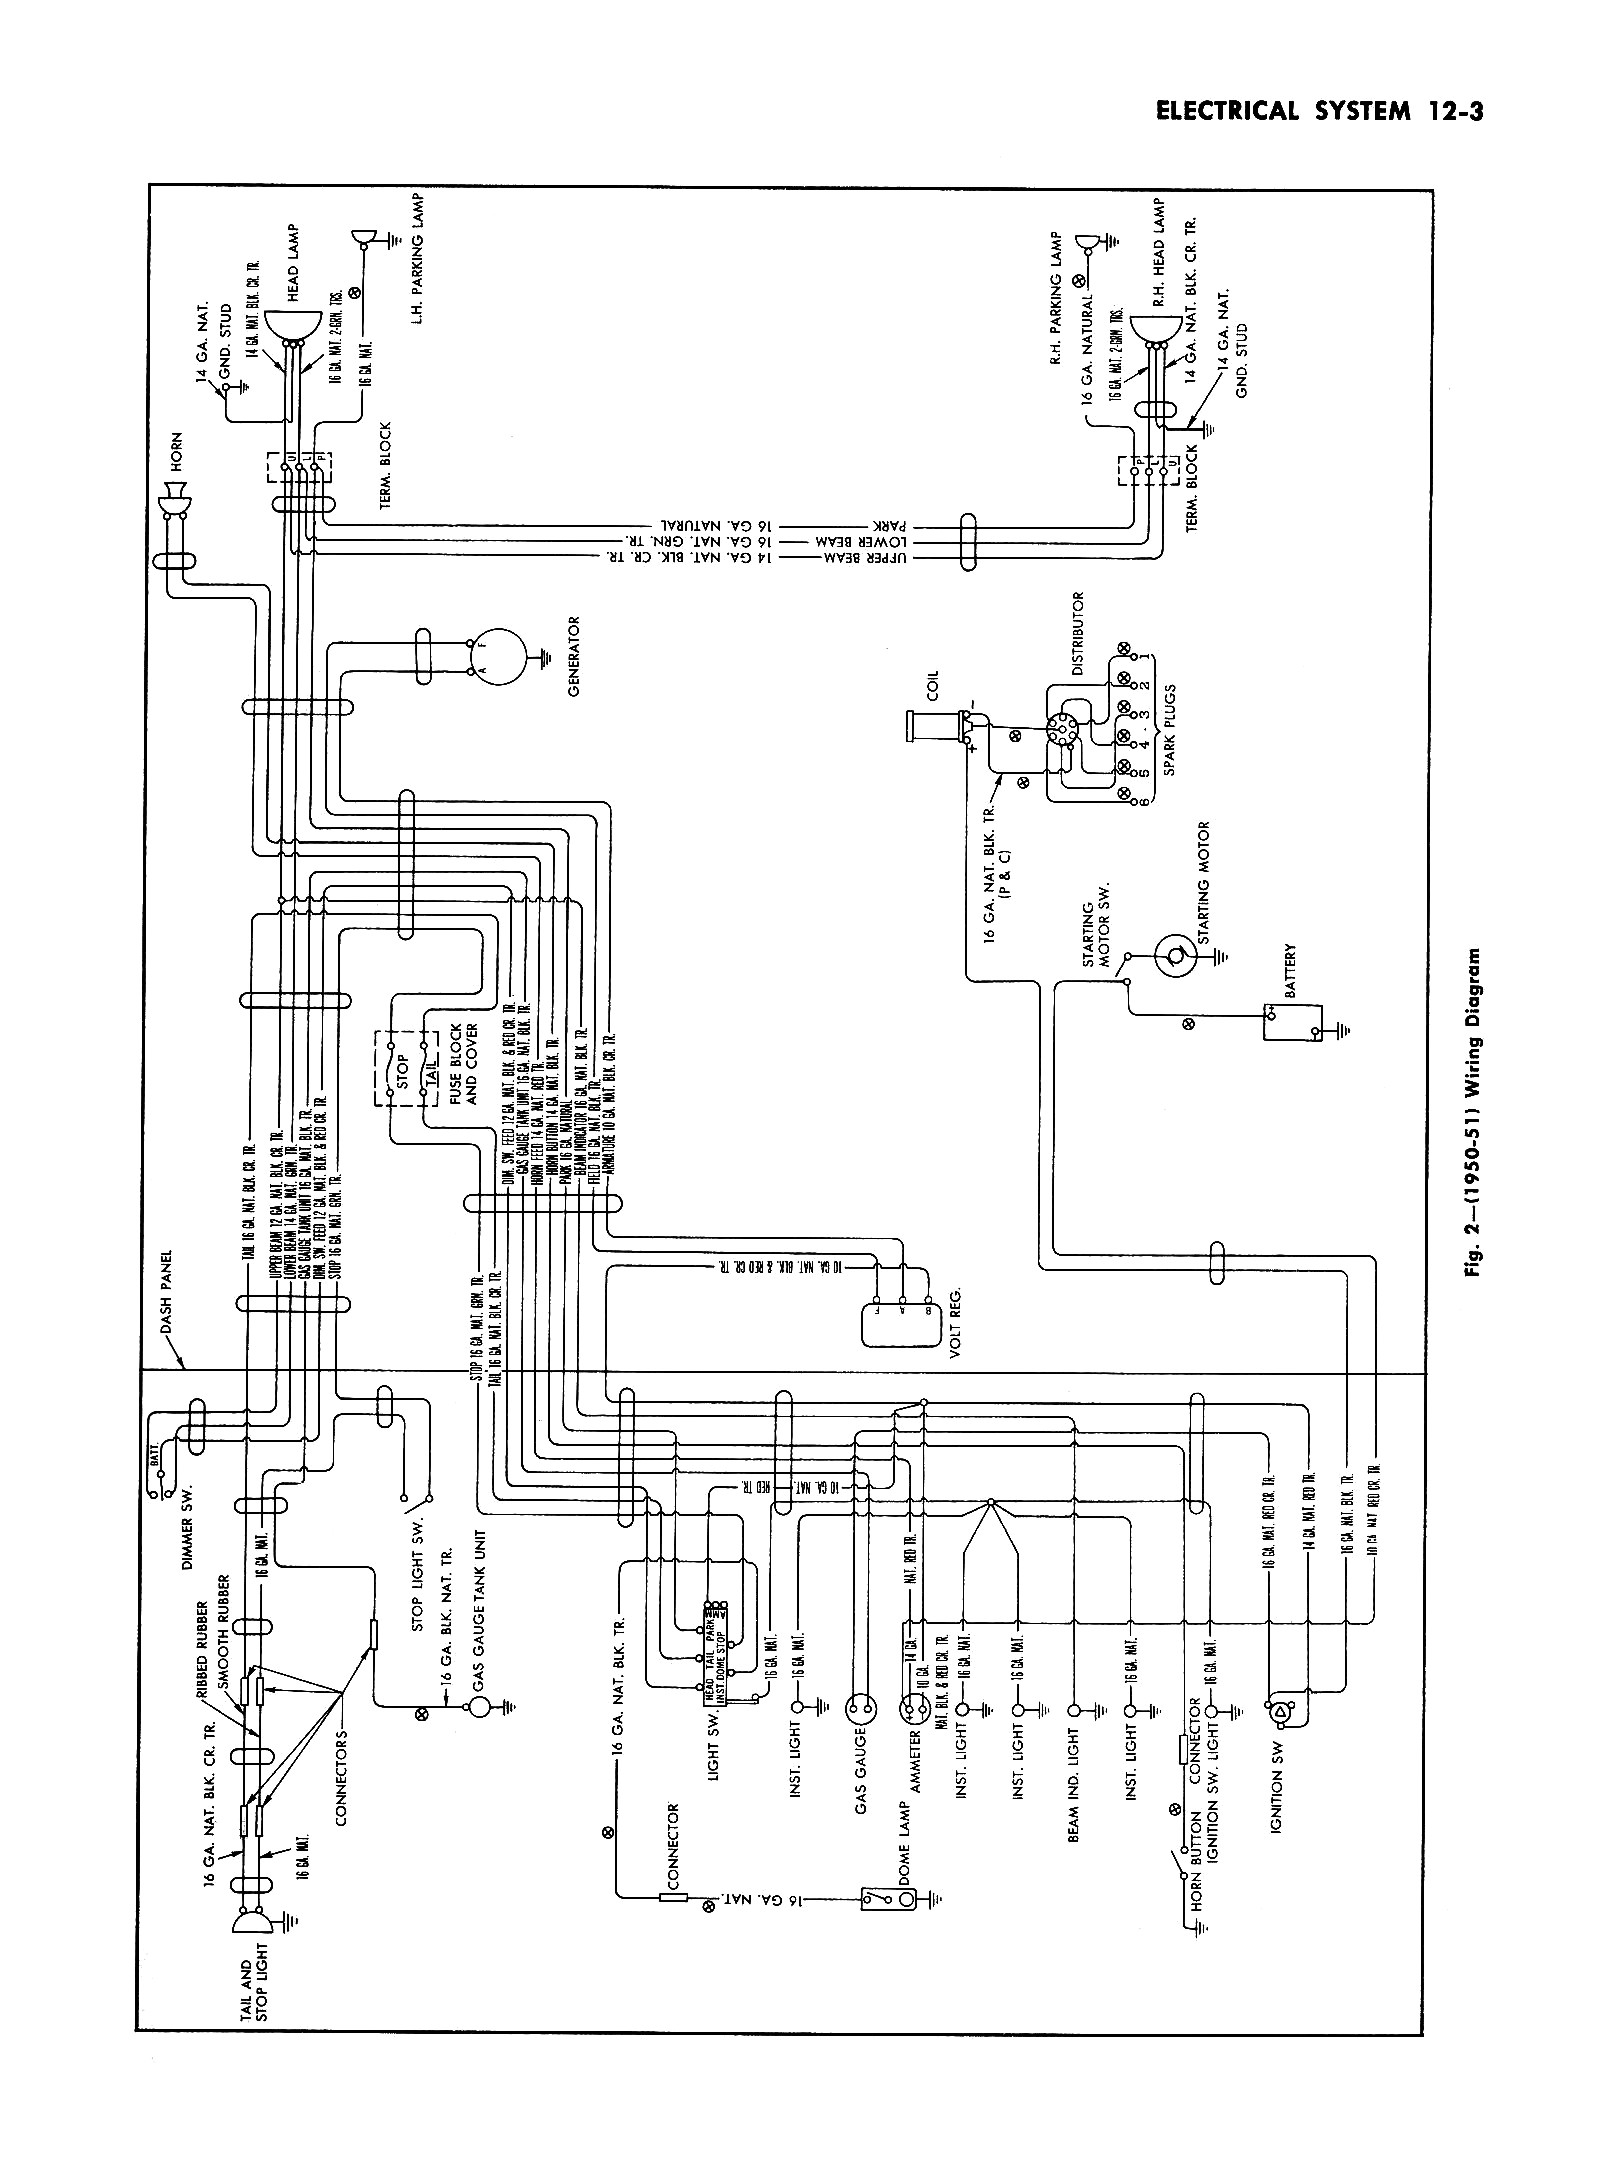 1950 Gmc Wiring Diagram Free Download Wiring Diagrams - Gmc Truck Wiring Harness